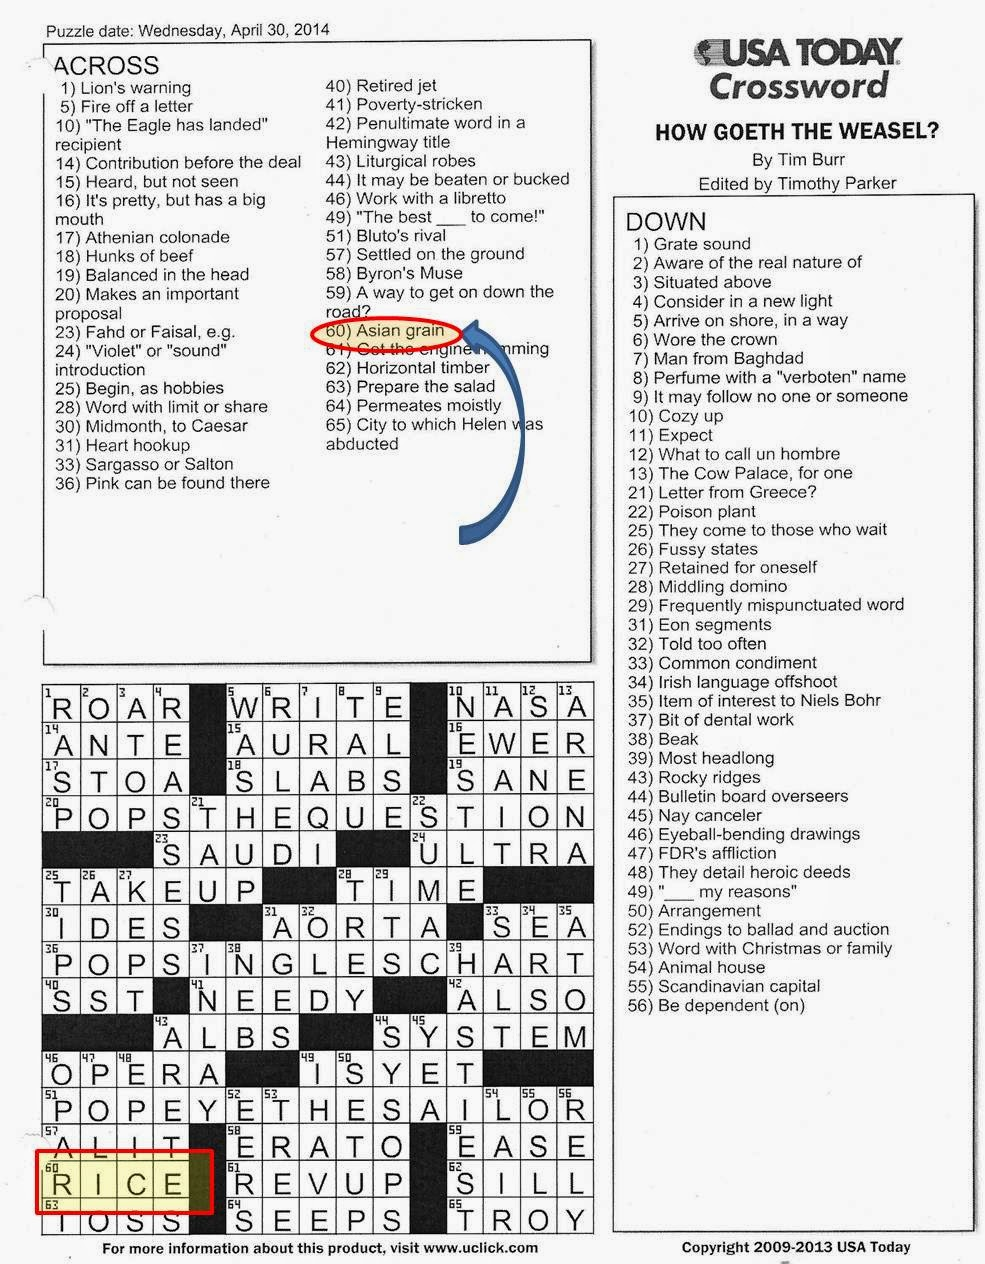 ... iniurias pati: #USAToday crossword puzzle = #racist! #sarc